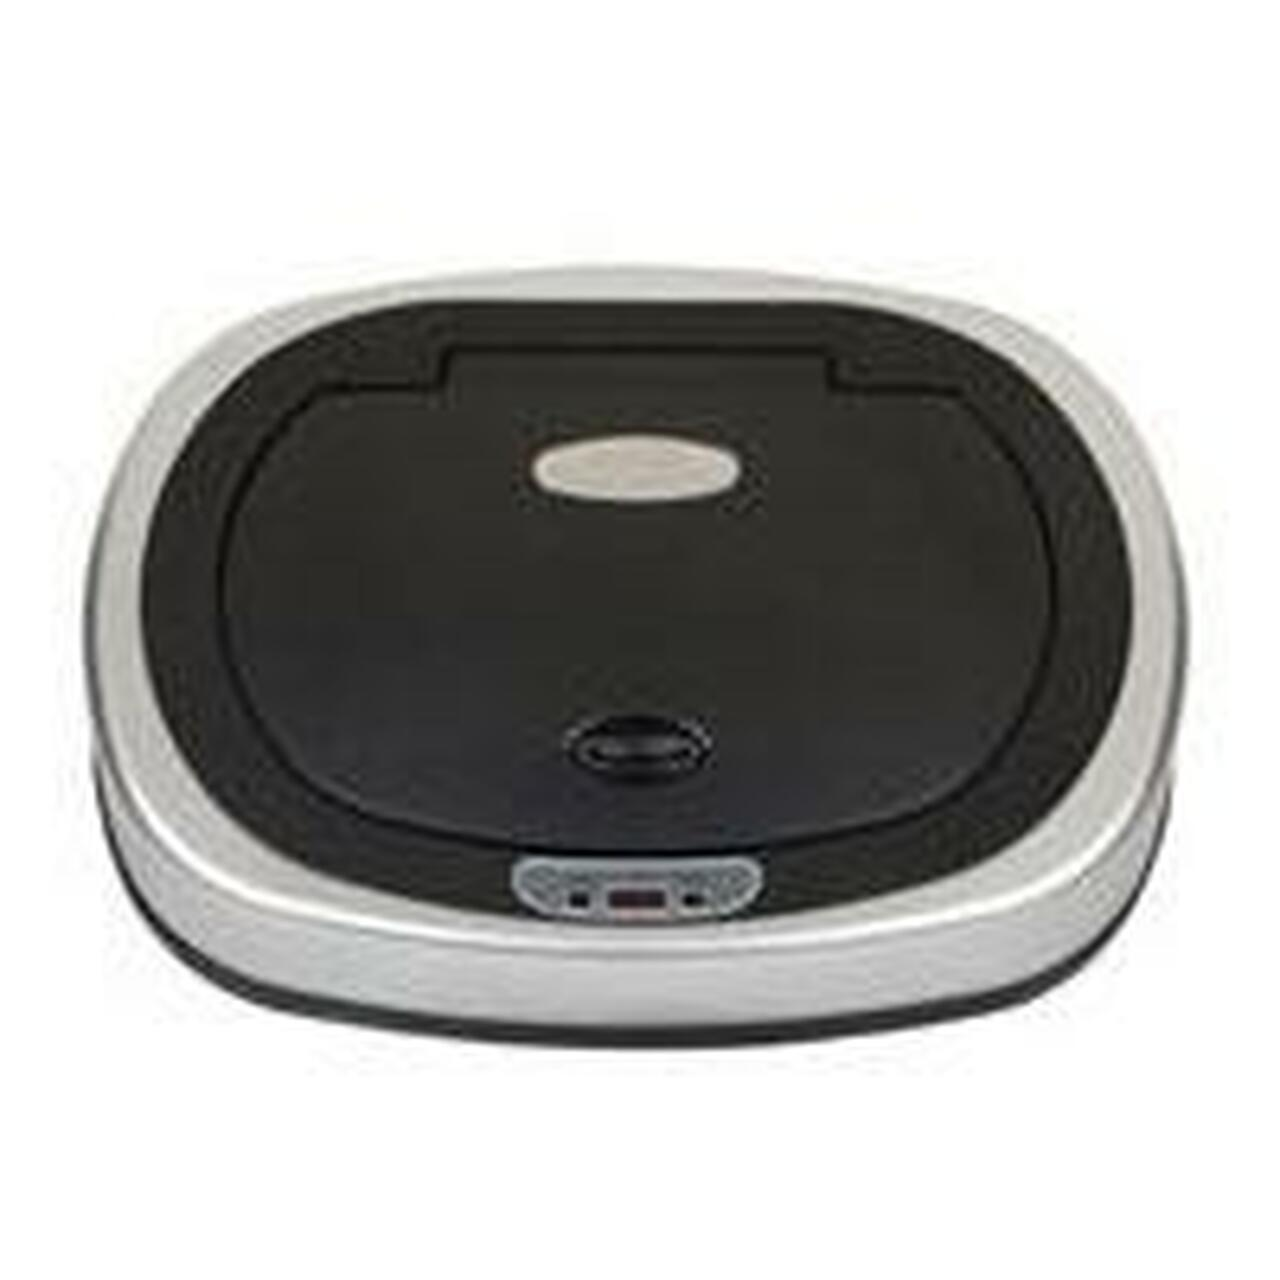 Replacement Lid for Oval Touchless Automatic Trash Cans